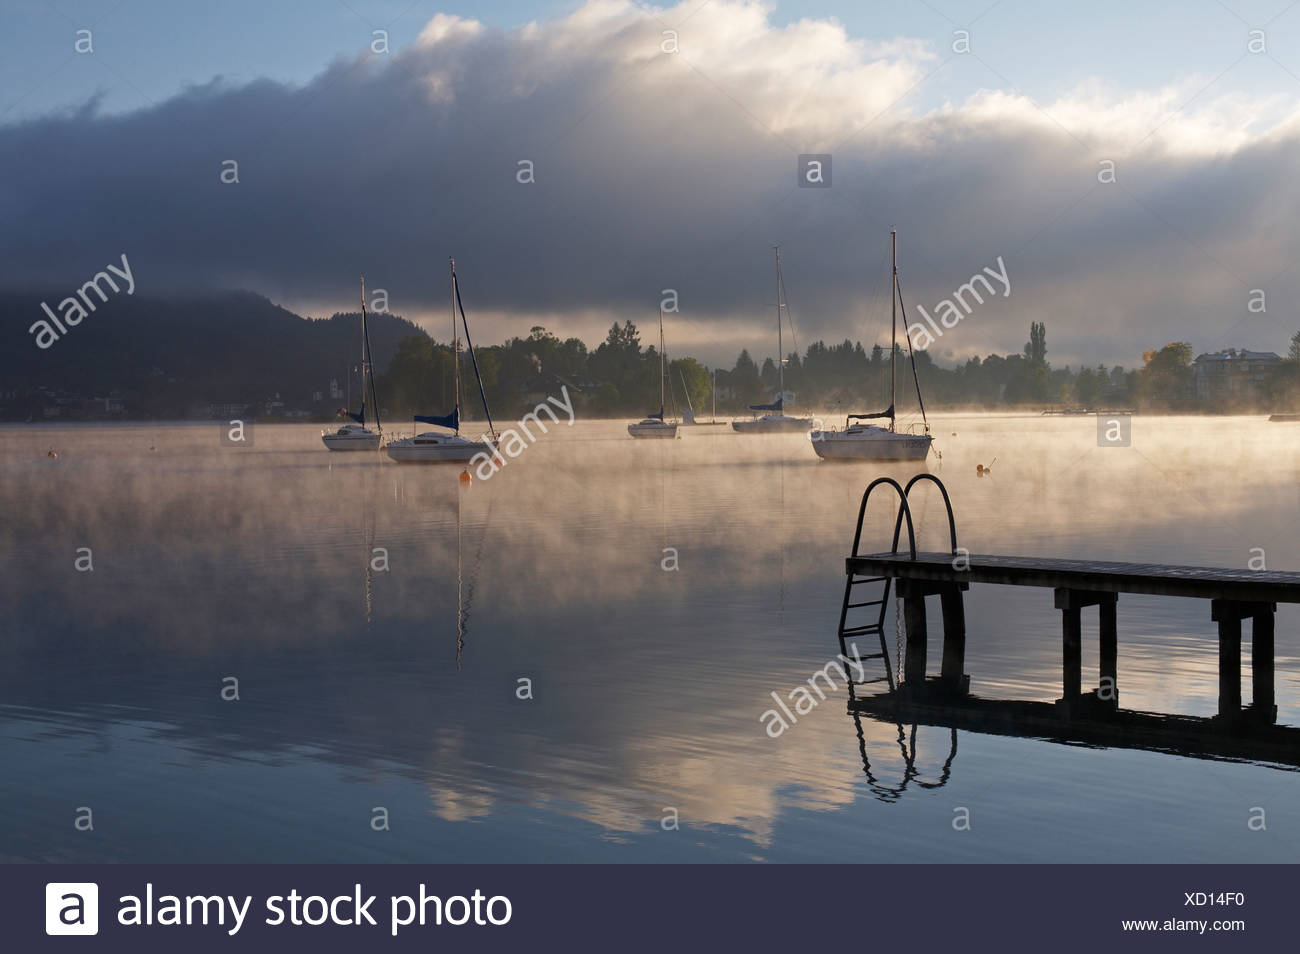 Boats on Woerthersee lake, Poertschach, Carinthia, Austria Stock Photo